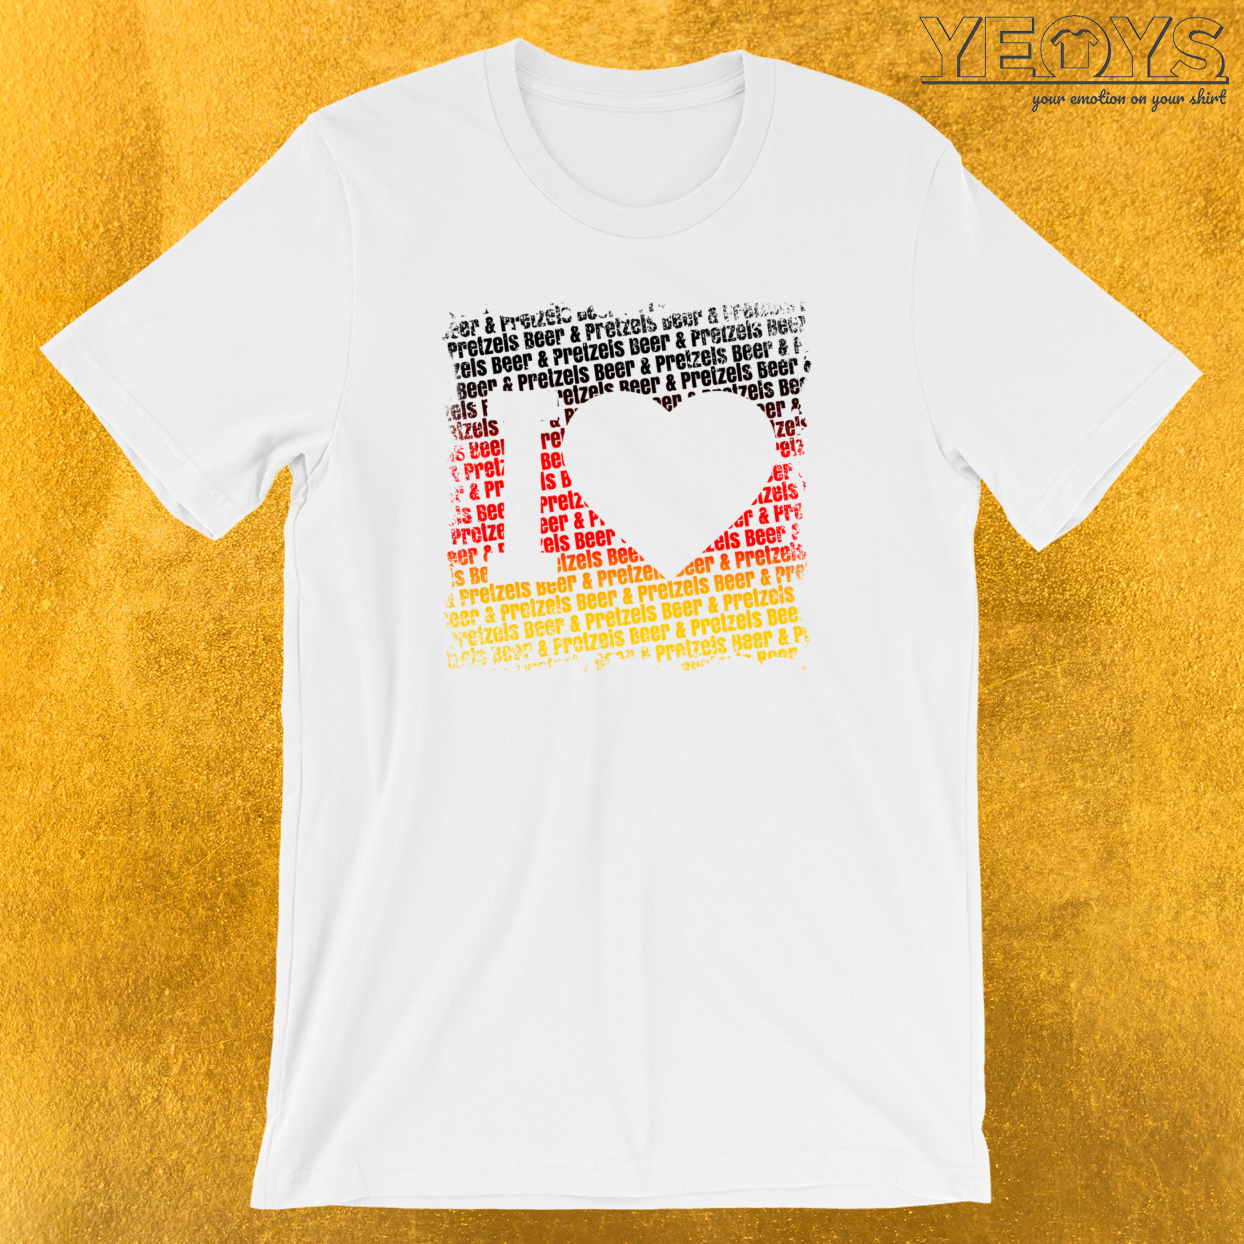 I Love Beer And Pretzels T-Shirt